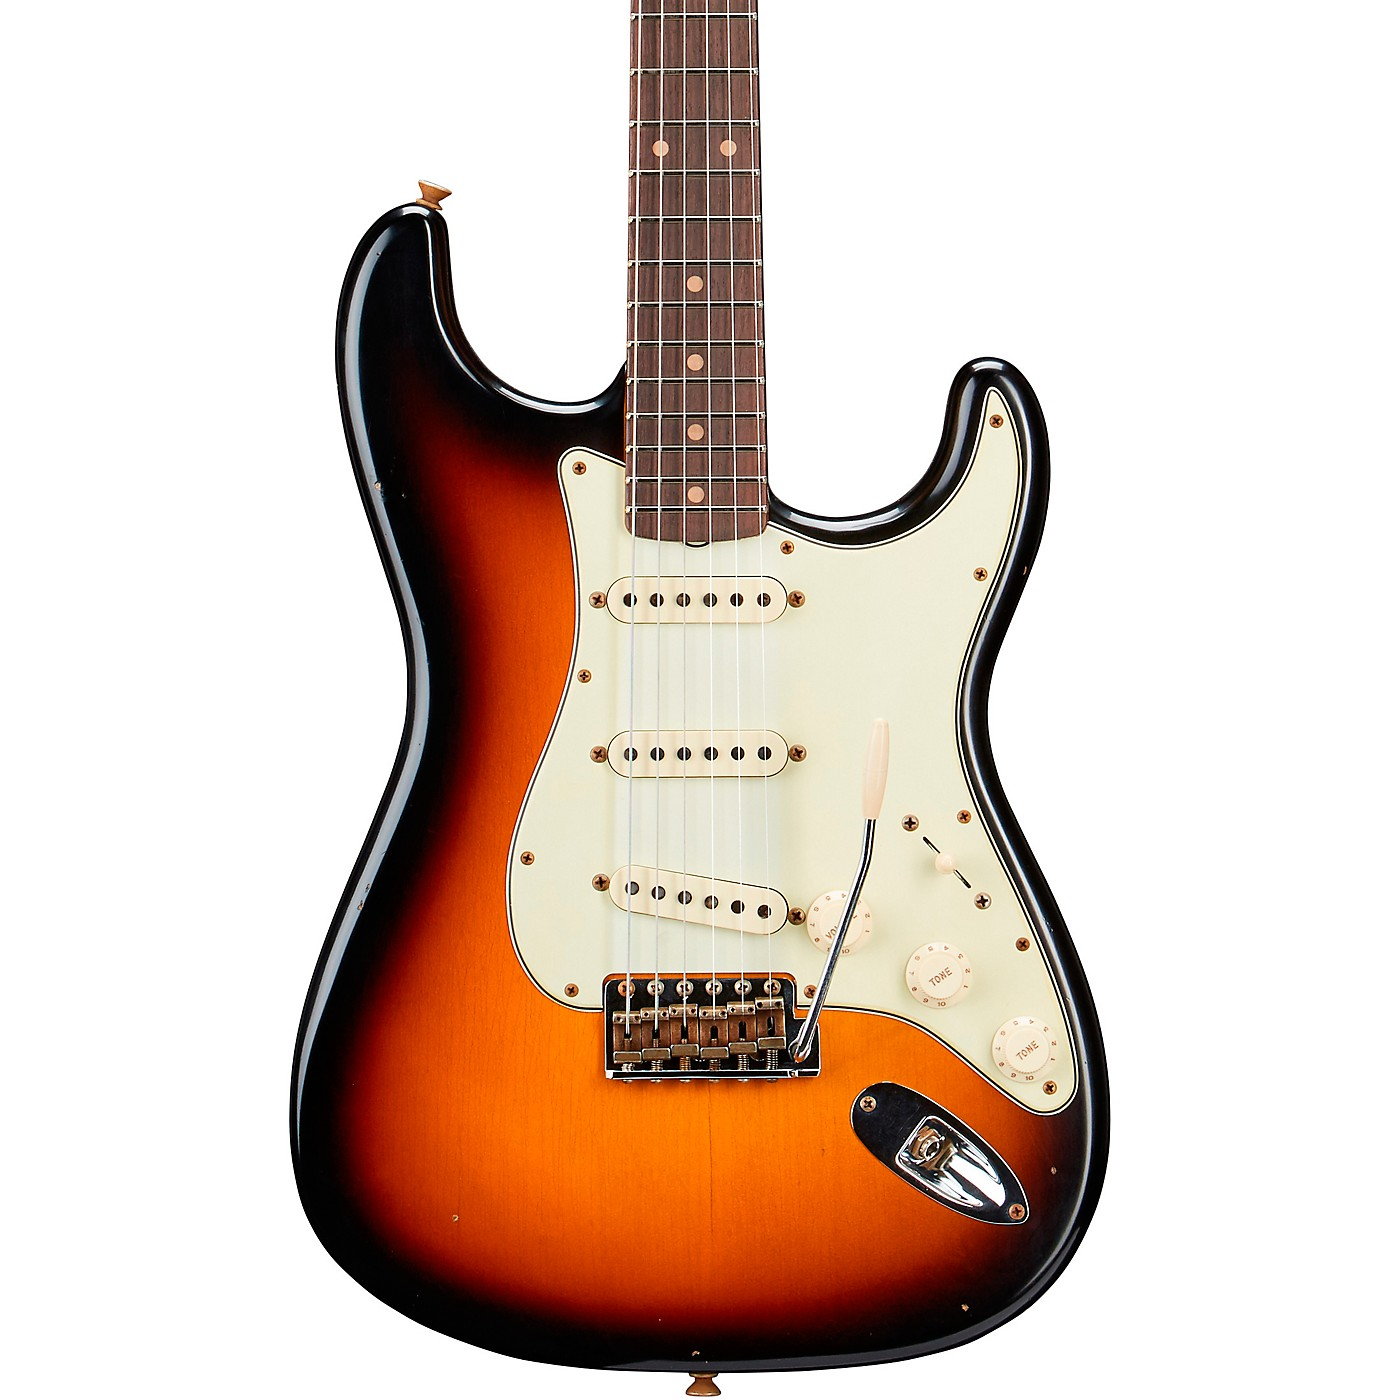 Fender Custom Shop Limited Edition 60 Stratocaster Journeyman Relic Rosewood Fingerboard Electric Guitar thumbnail